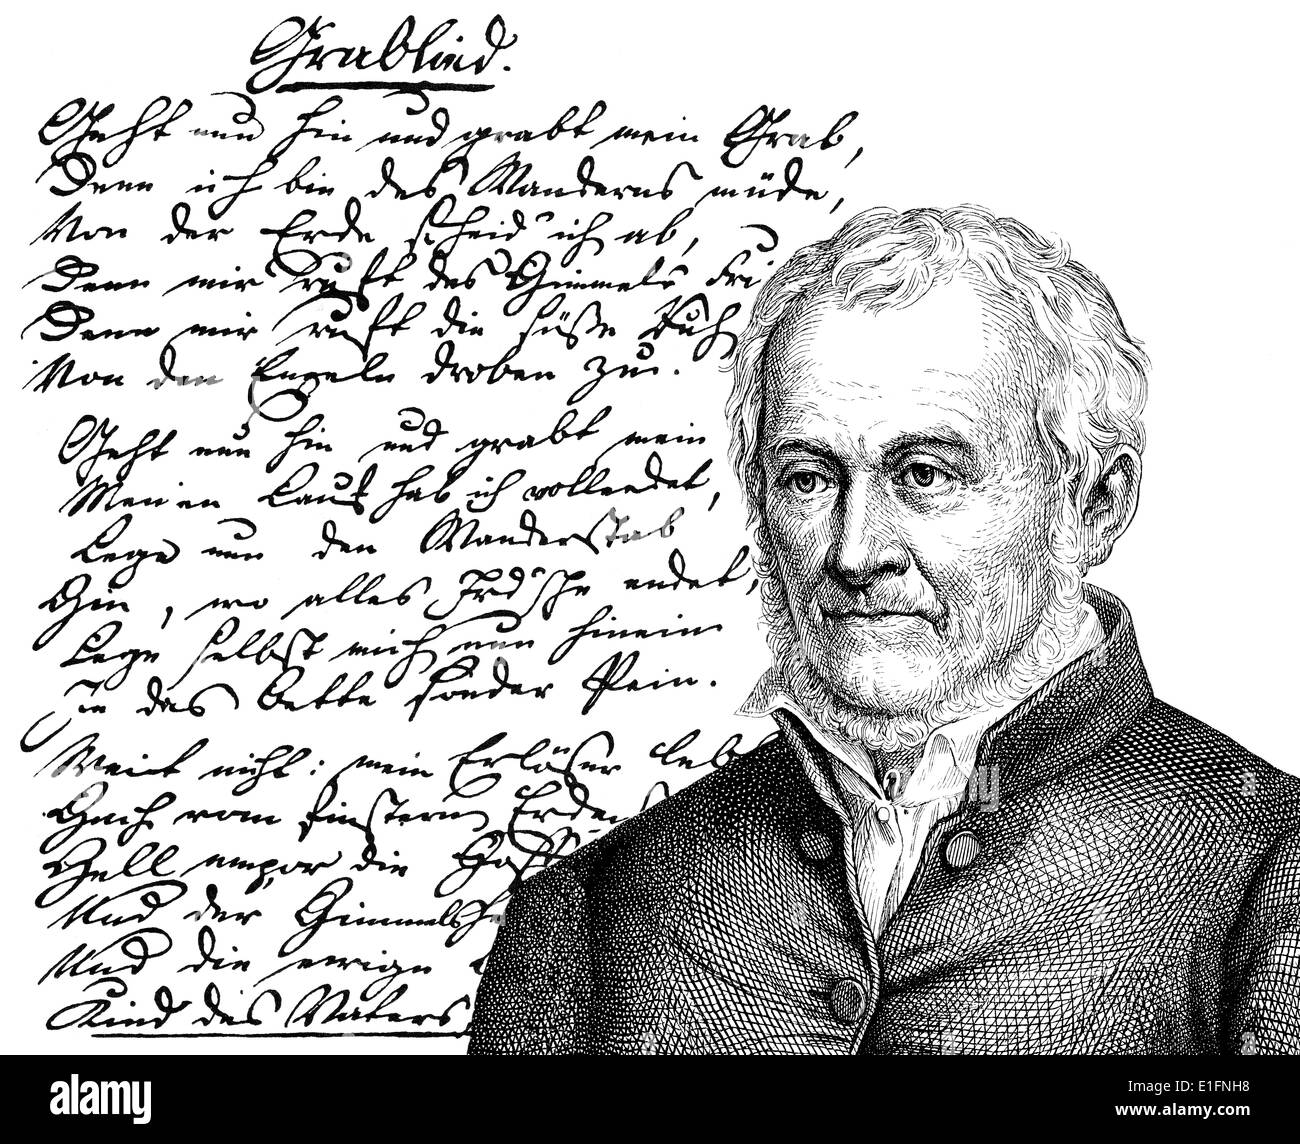 Ernst Moritz Arndt, 1769 - 1860, a German writer and deputy of the National Assembly in Frankfurt, Das Grablied, The grave song, - Stock Image